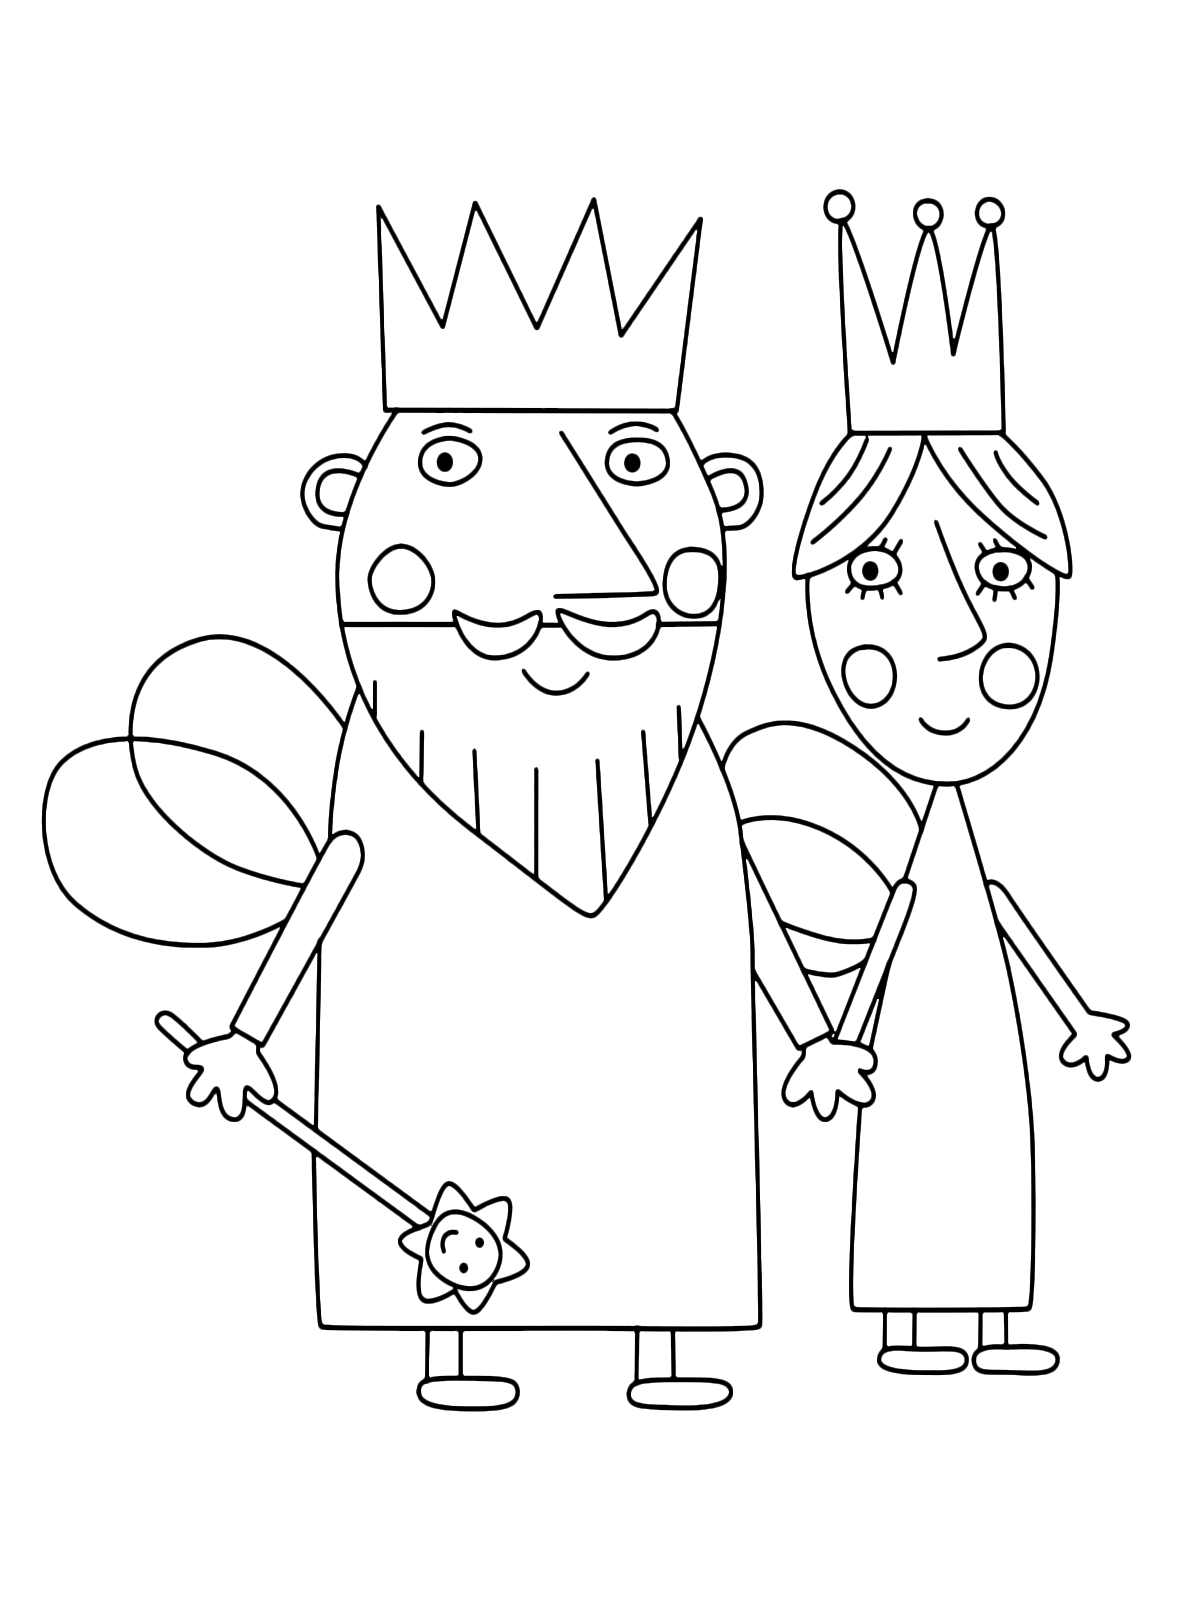 ben and holly coloring pages pdf ben and holly coloring pages pdf coloring page blog holly ben pages coloring and pdf